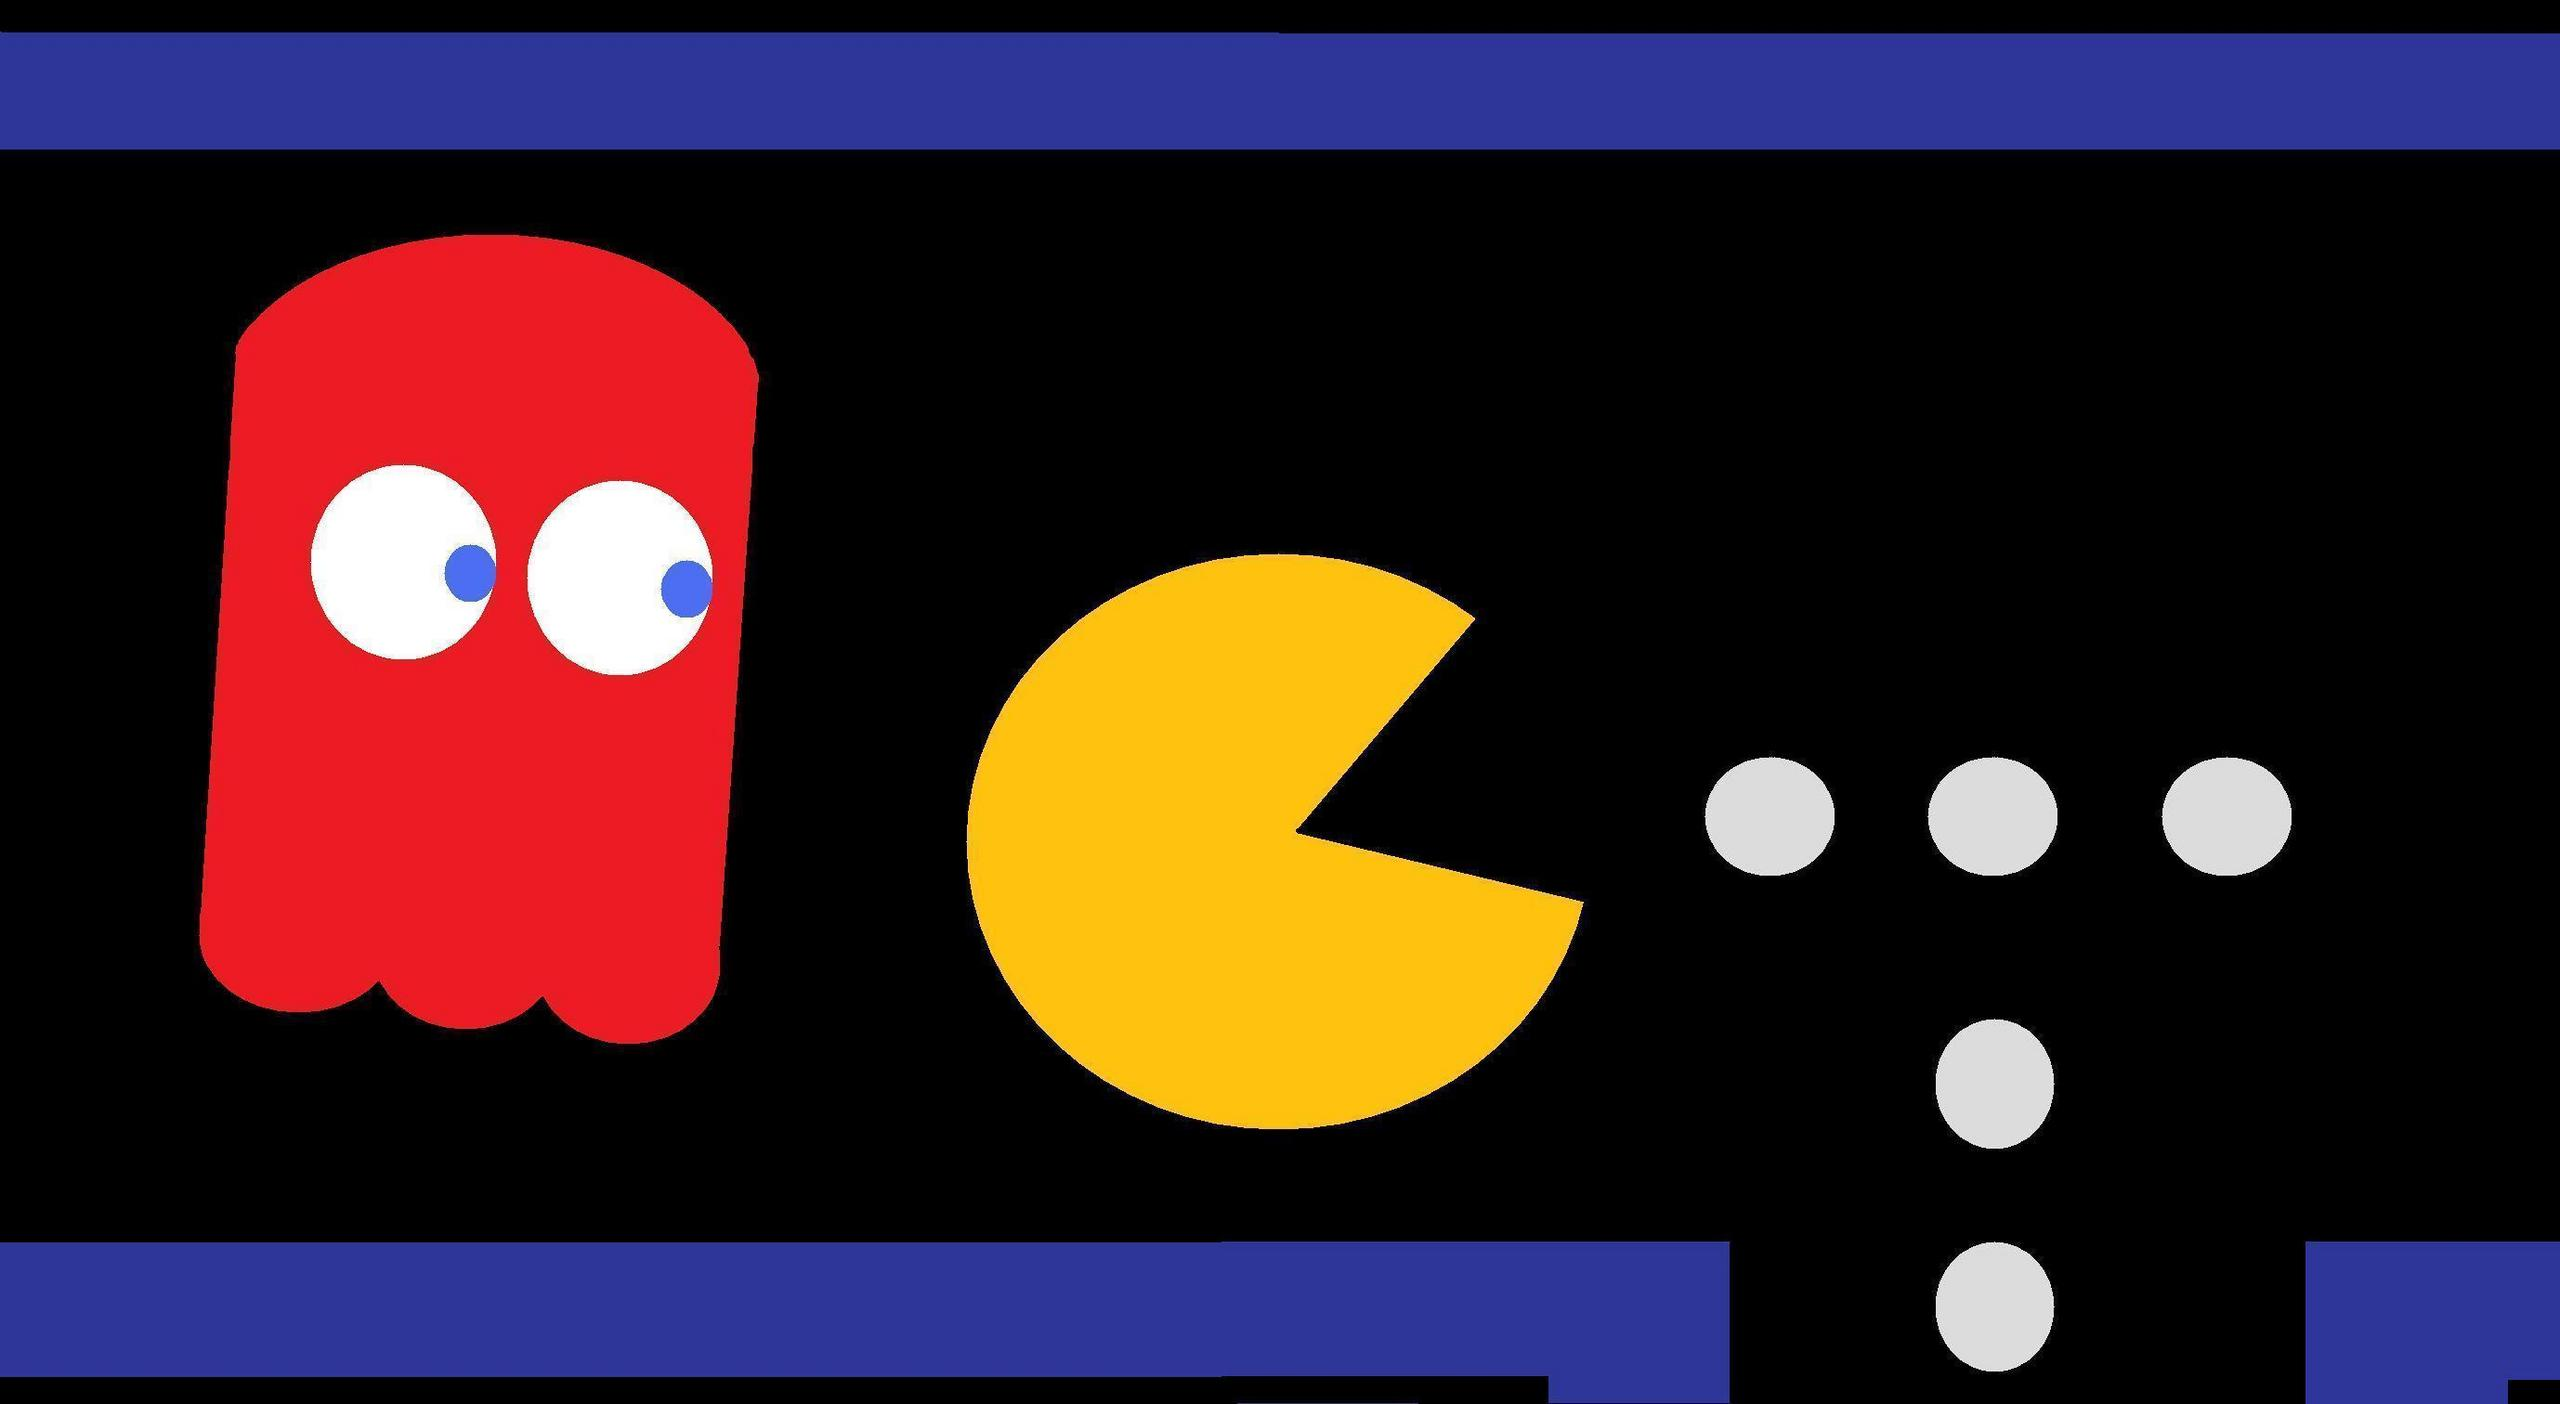 This is a graphic of Insane Pictures of Pacman Ghosts